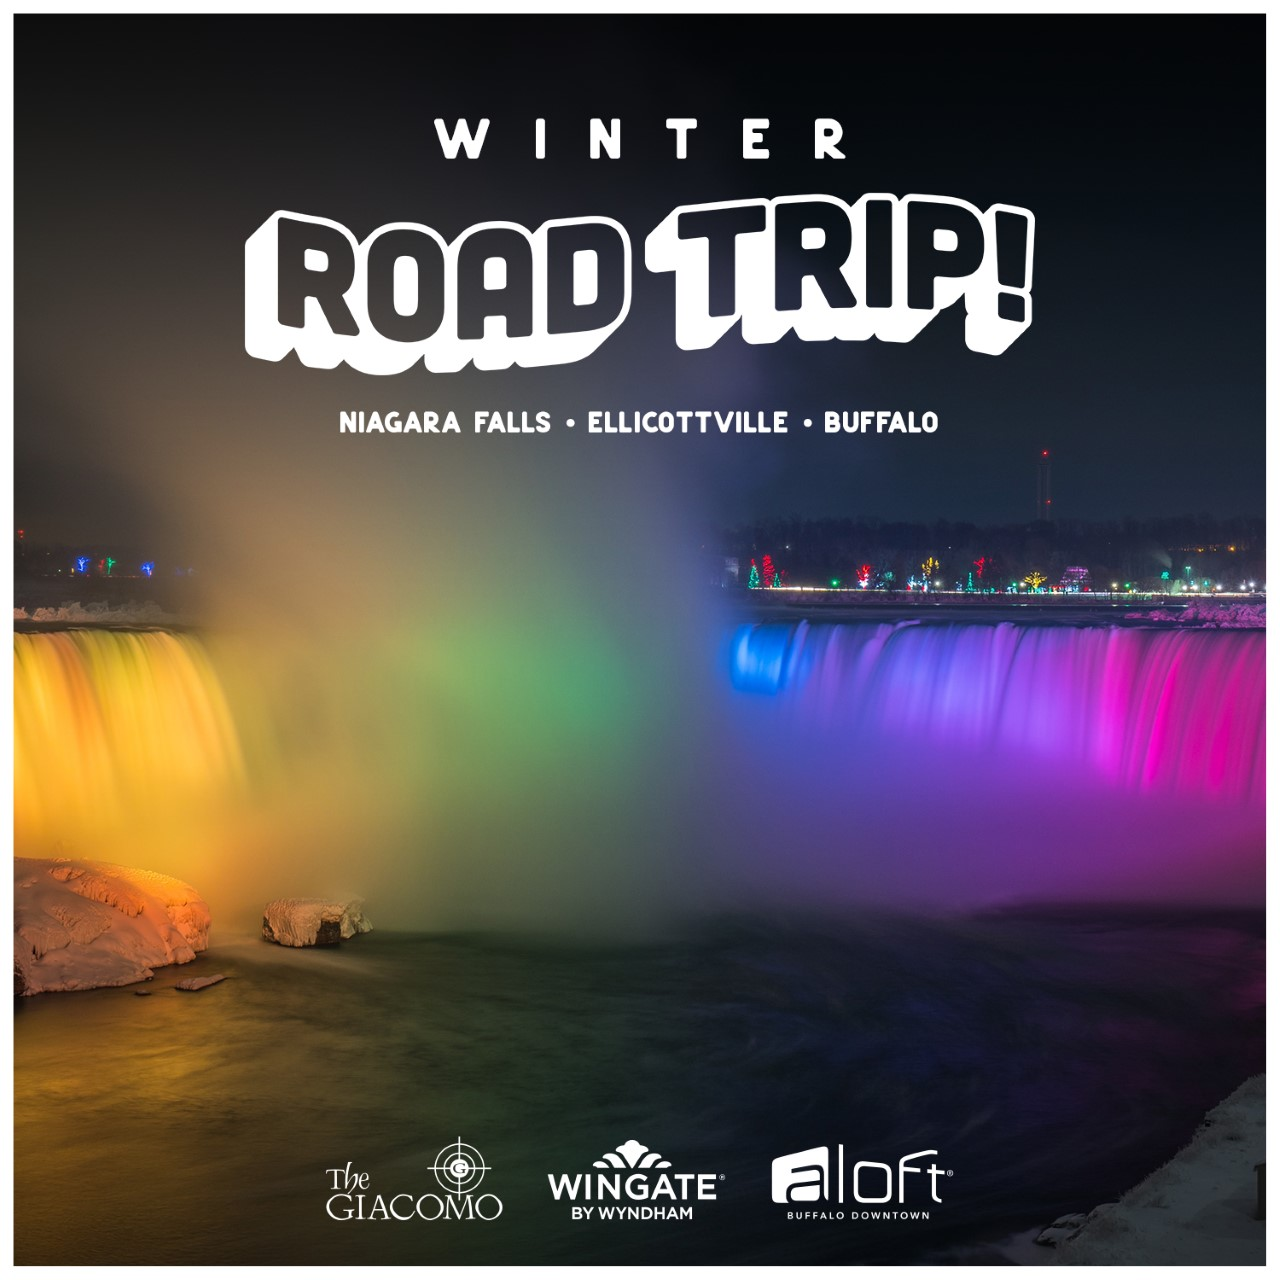 Winter Road Trip